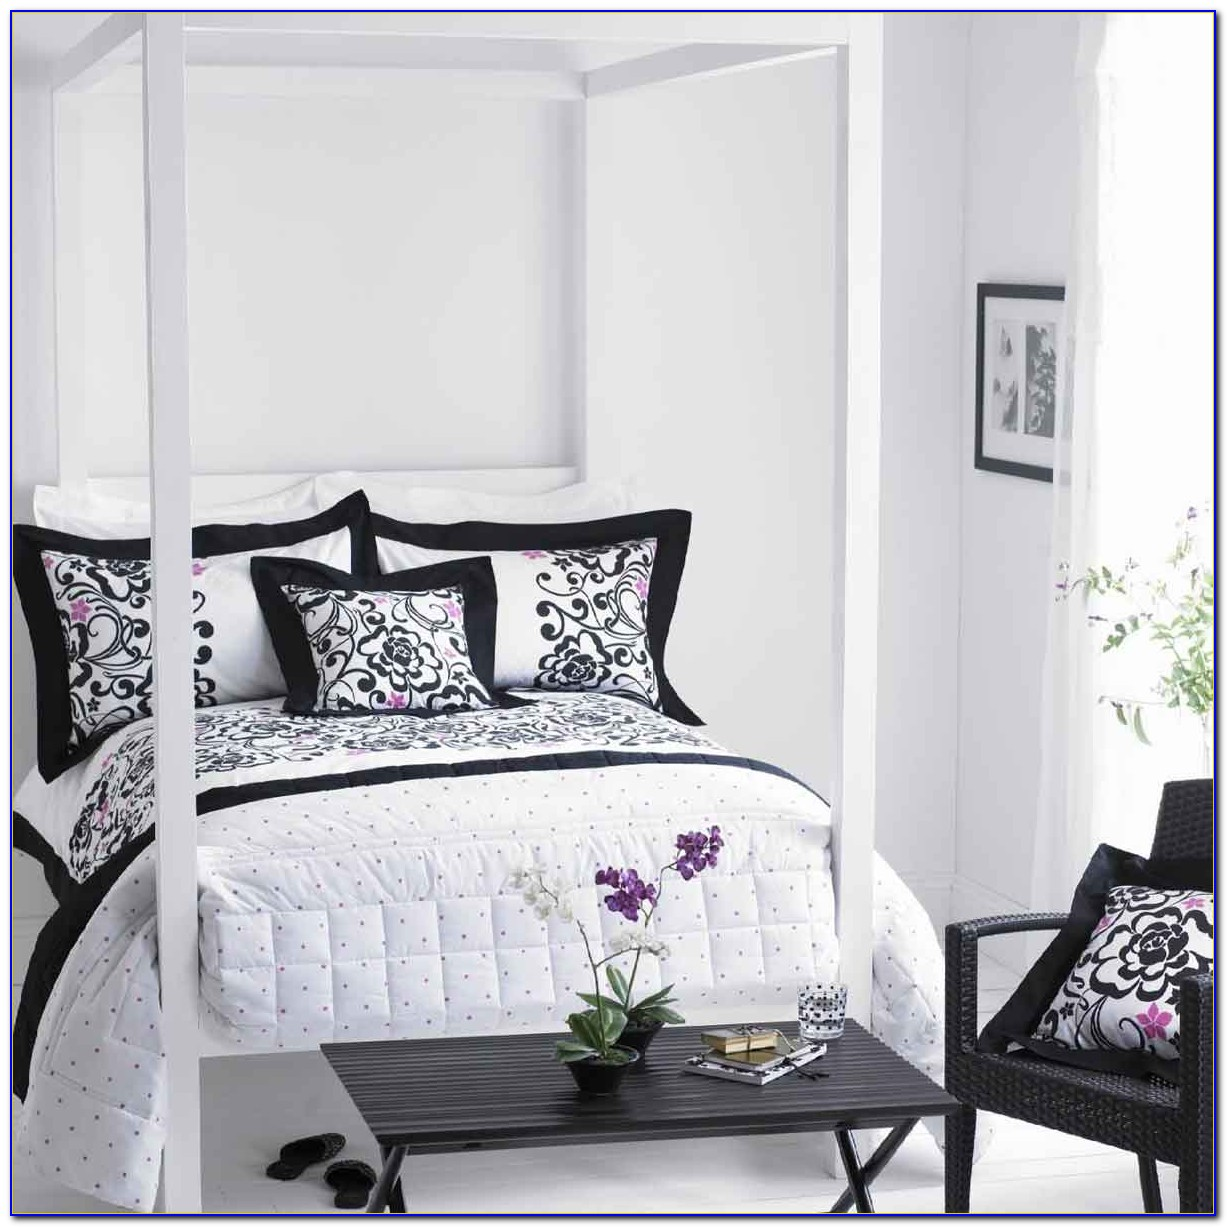 Black And White Bedroom Decor Tumblr